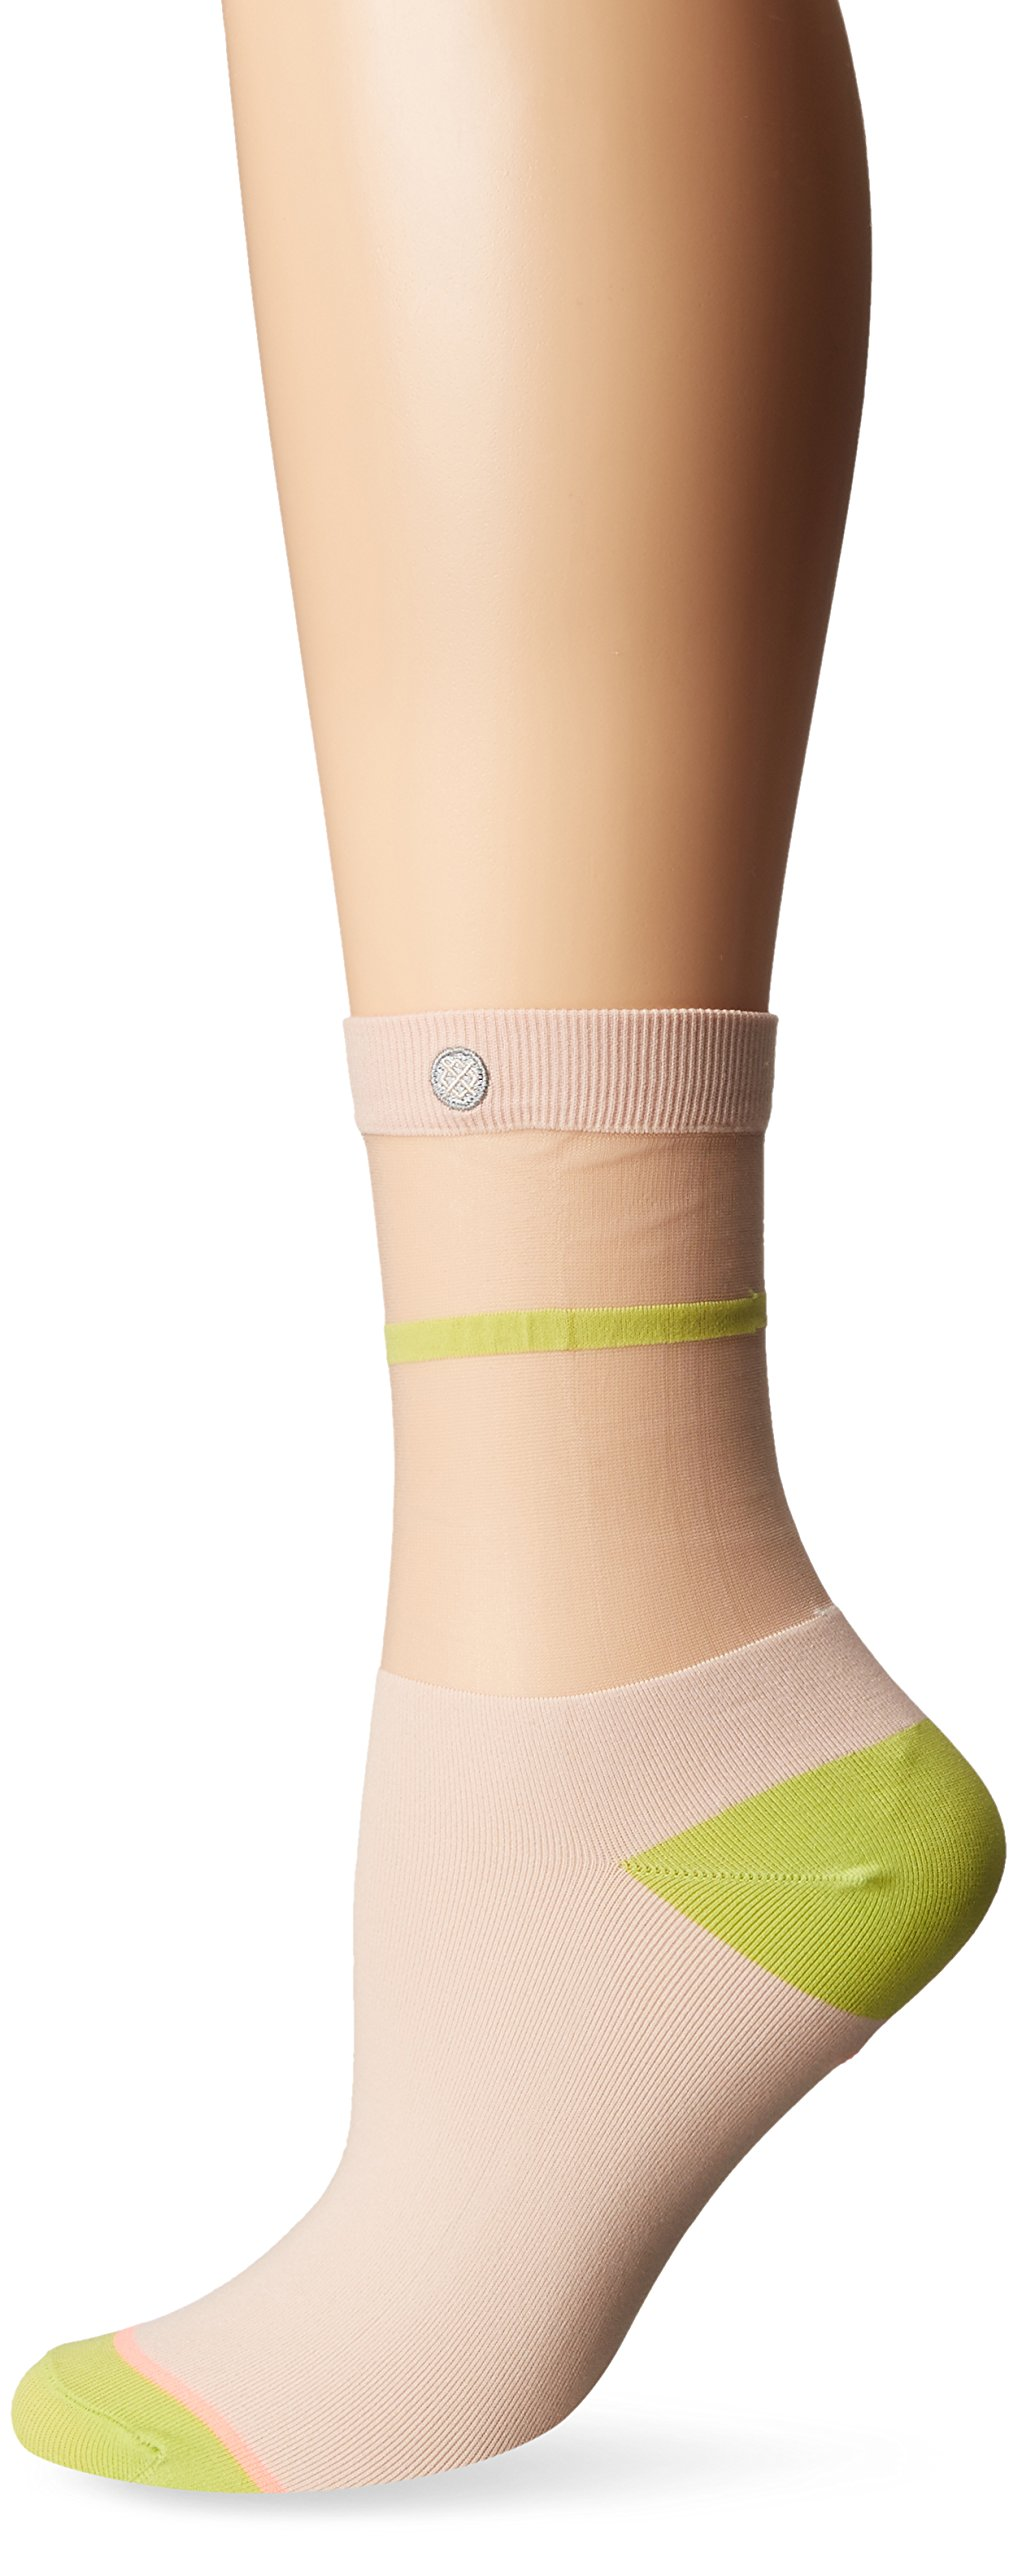 Stance Women's Foxy Sheer Anklet Sock, Blue, Medium